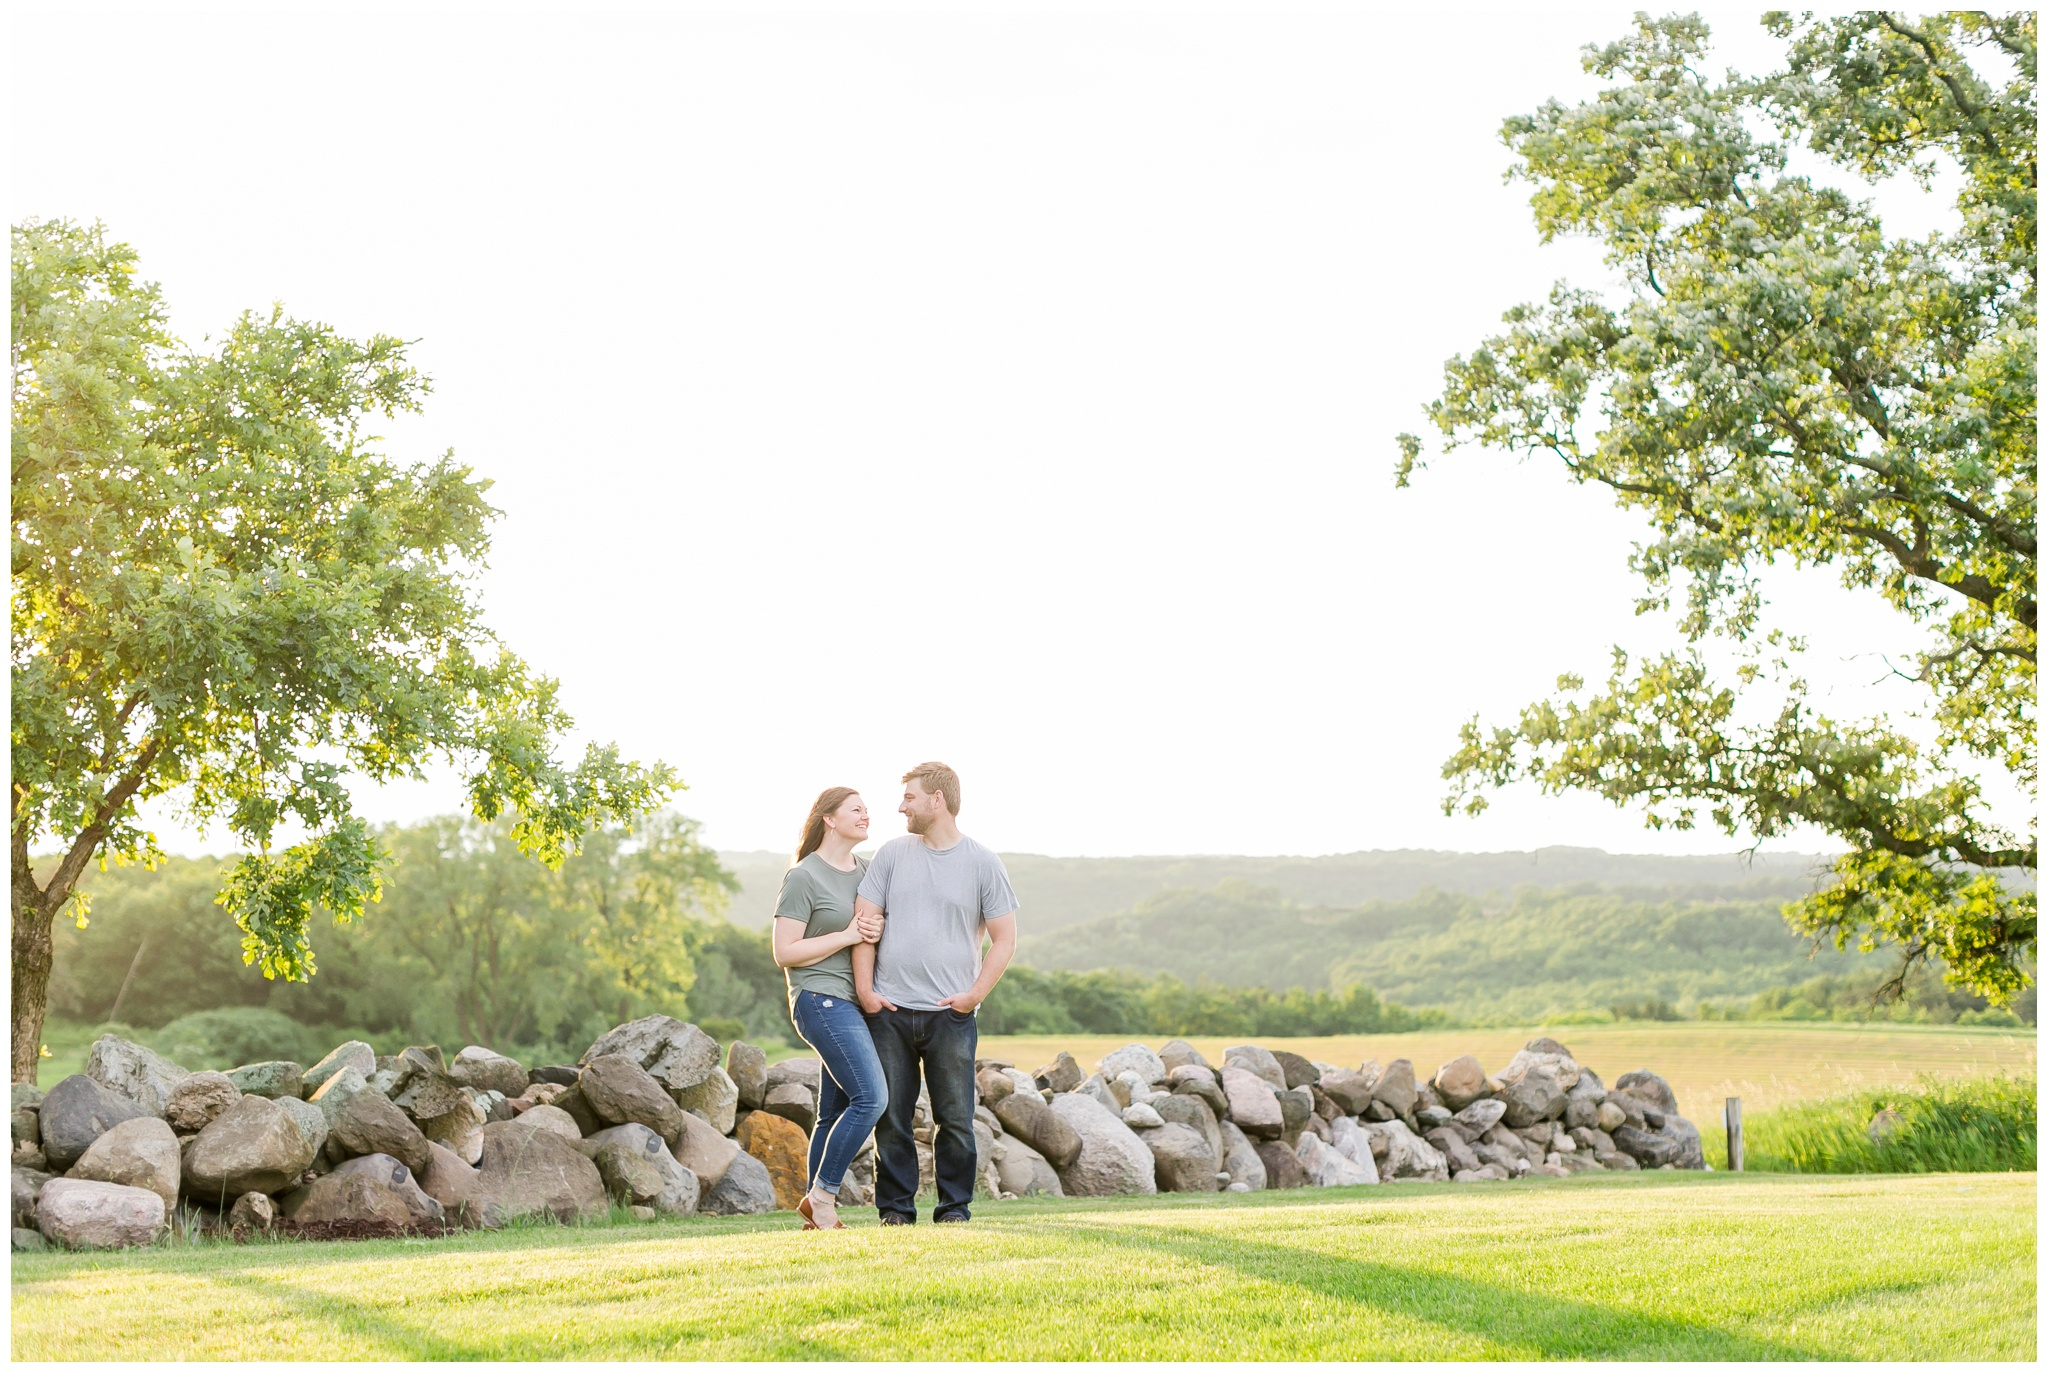 pope_farm_conservancy_engagement_session_madison_wisconsin_engagement_photographers_4161.jpg